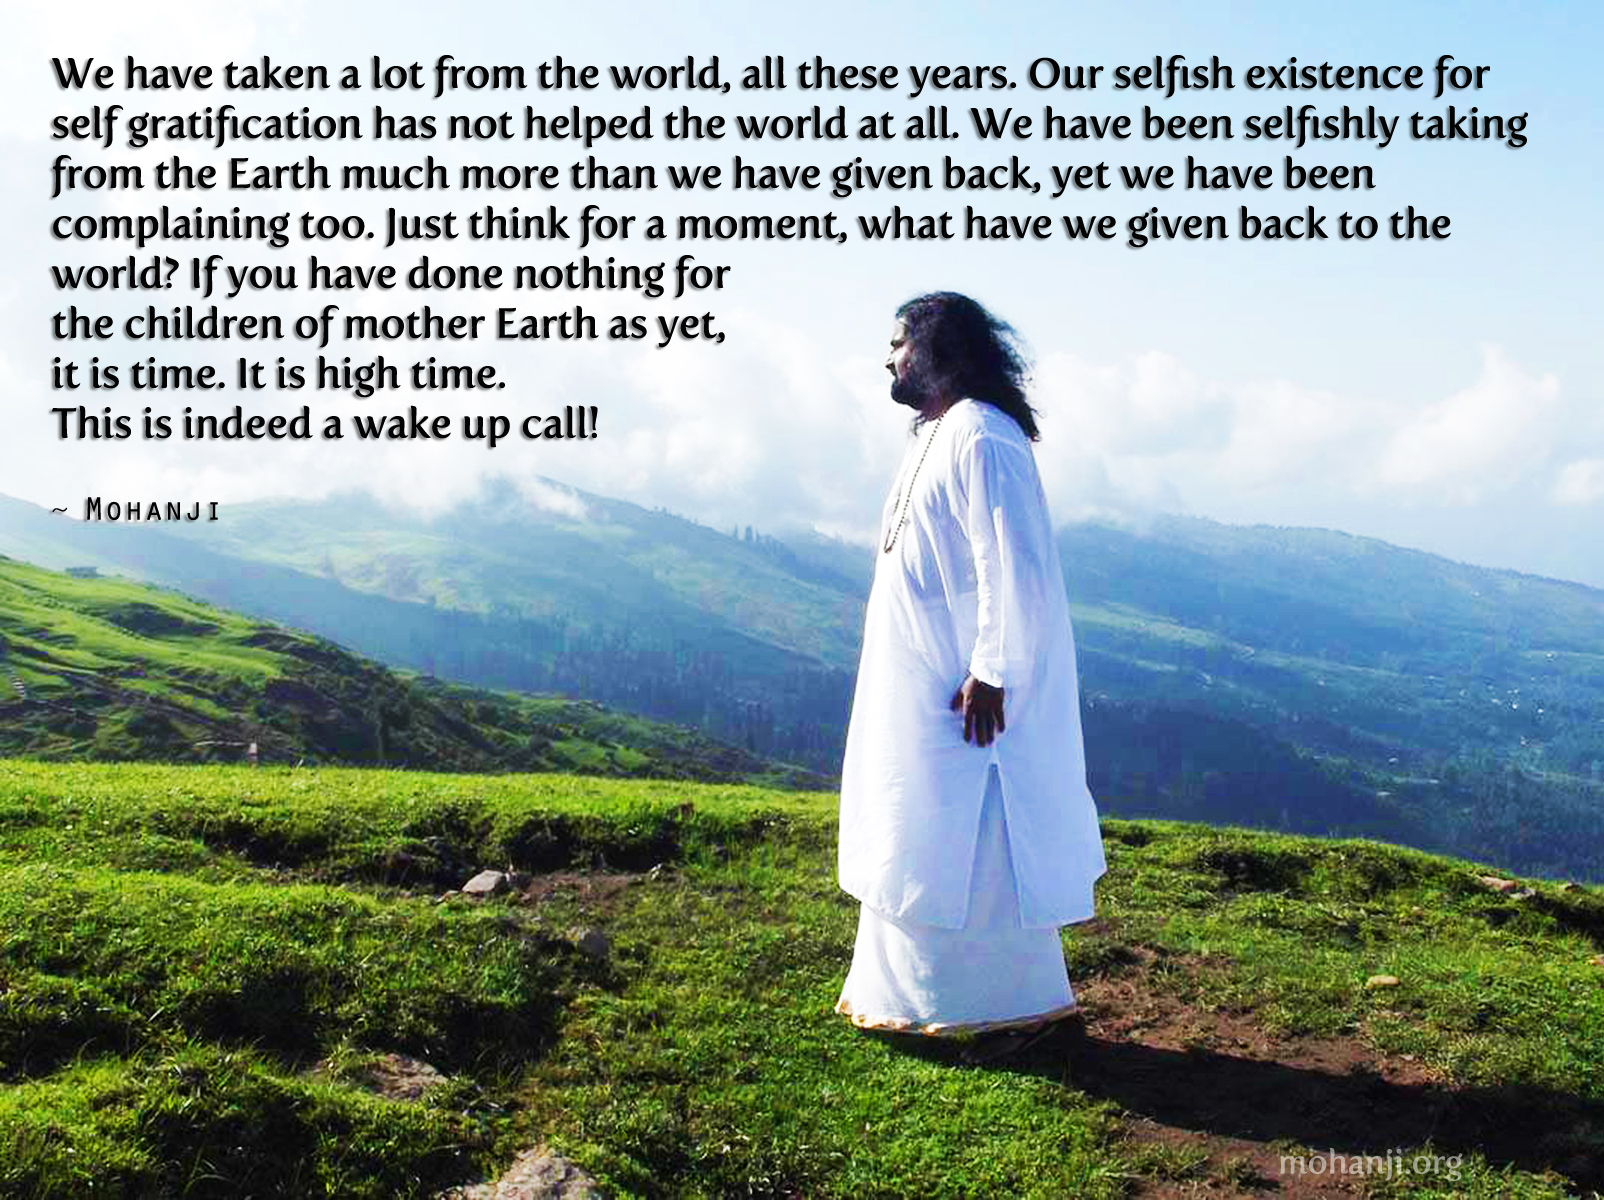 mohanji-quote-give-back-to-mother-earth